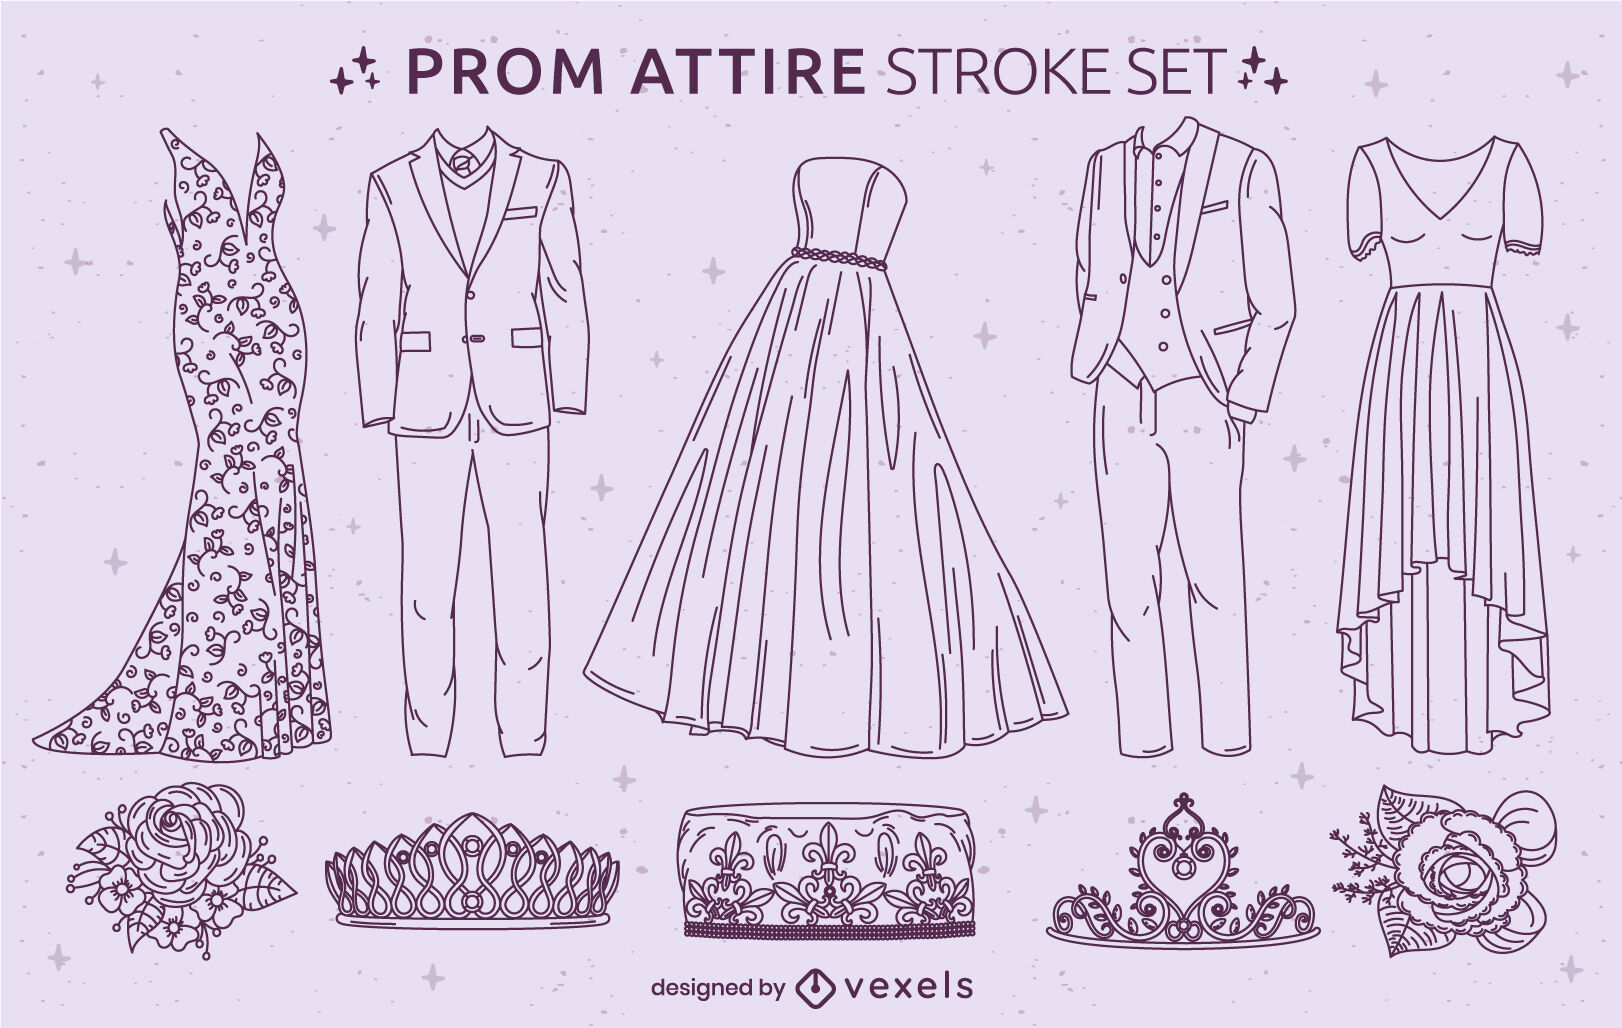 Prom formal party clothing stroke set